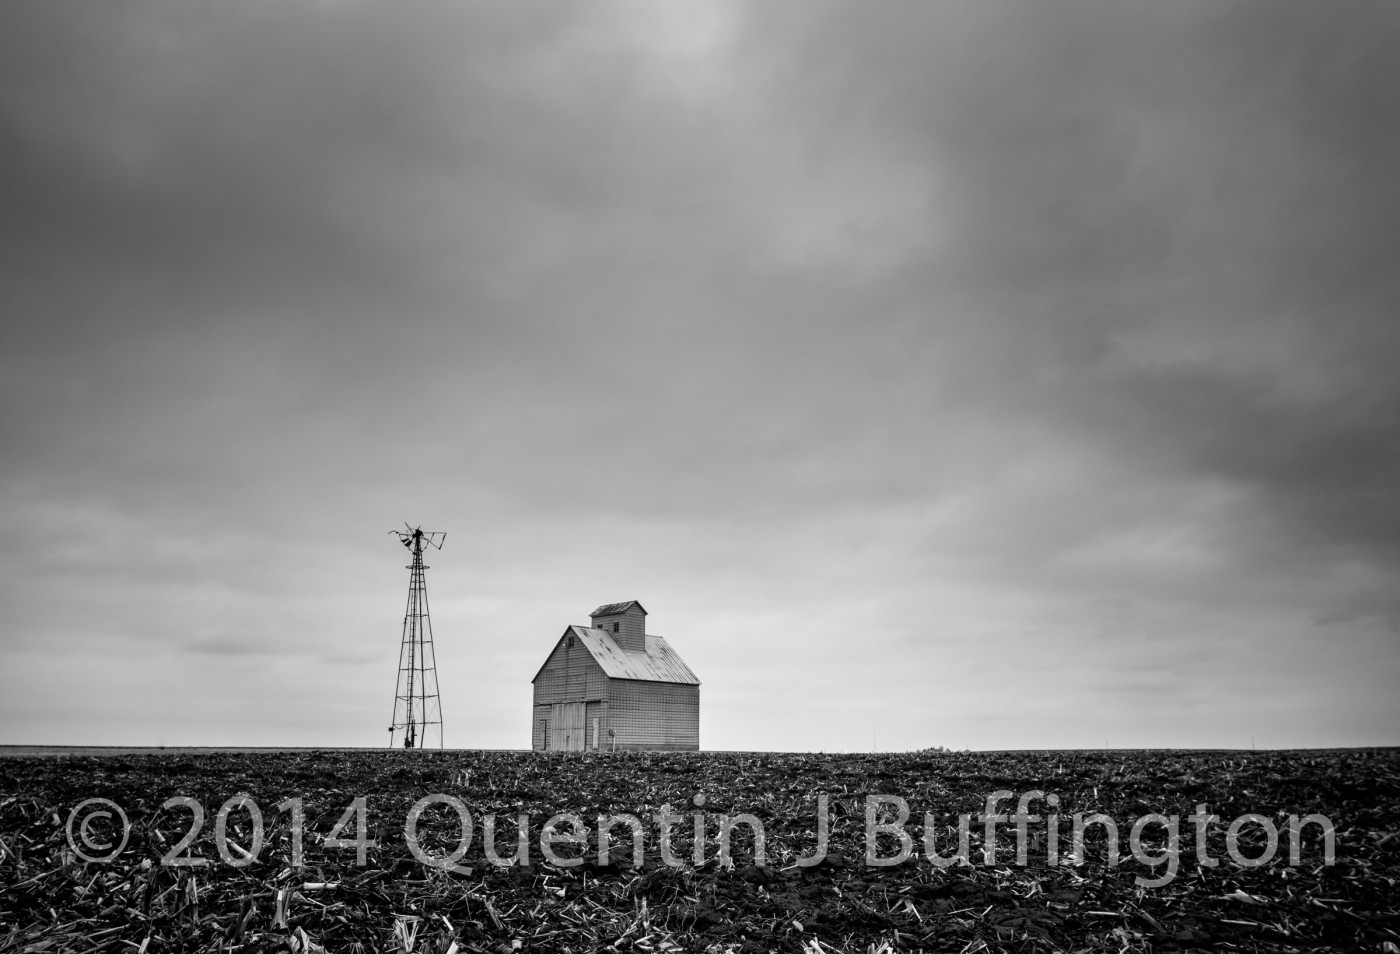 An old windmill and barn crib standing lonely and barren on the prairie.